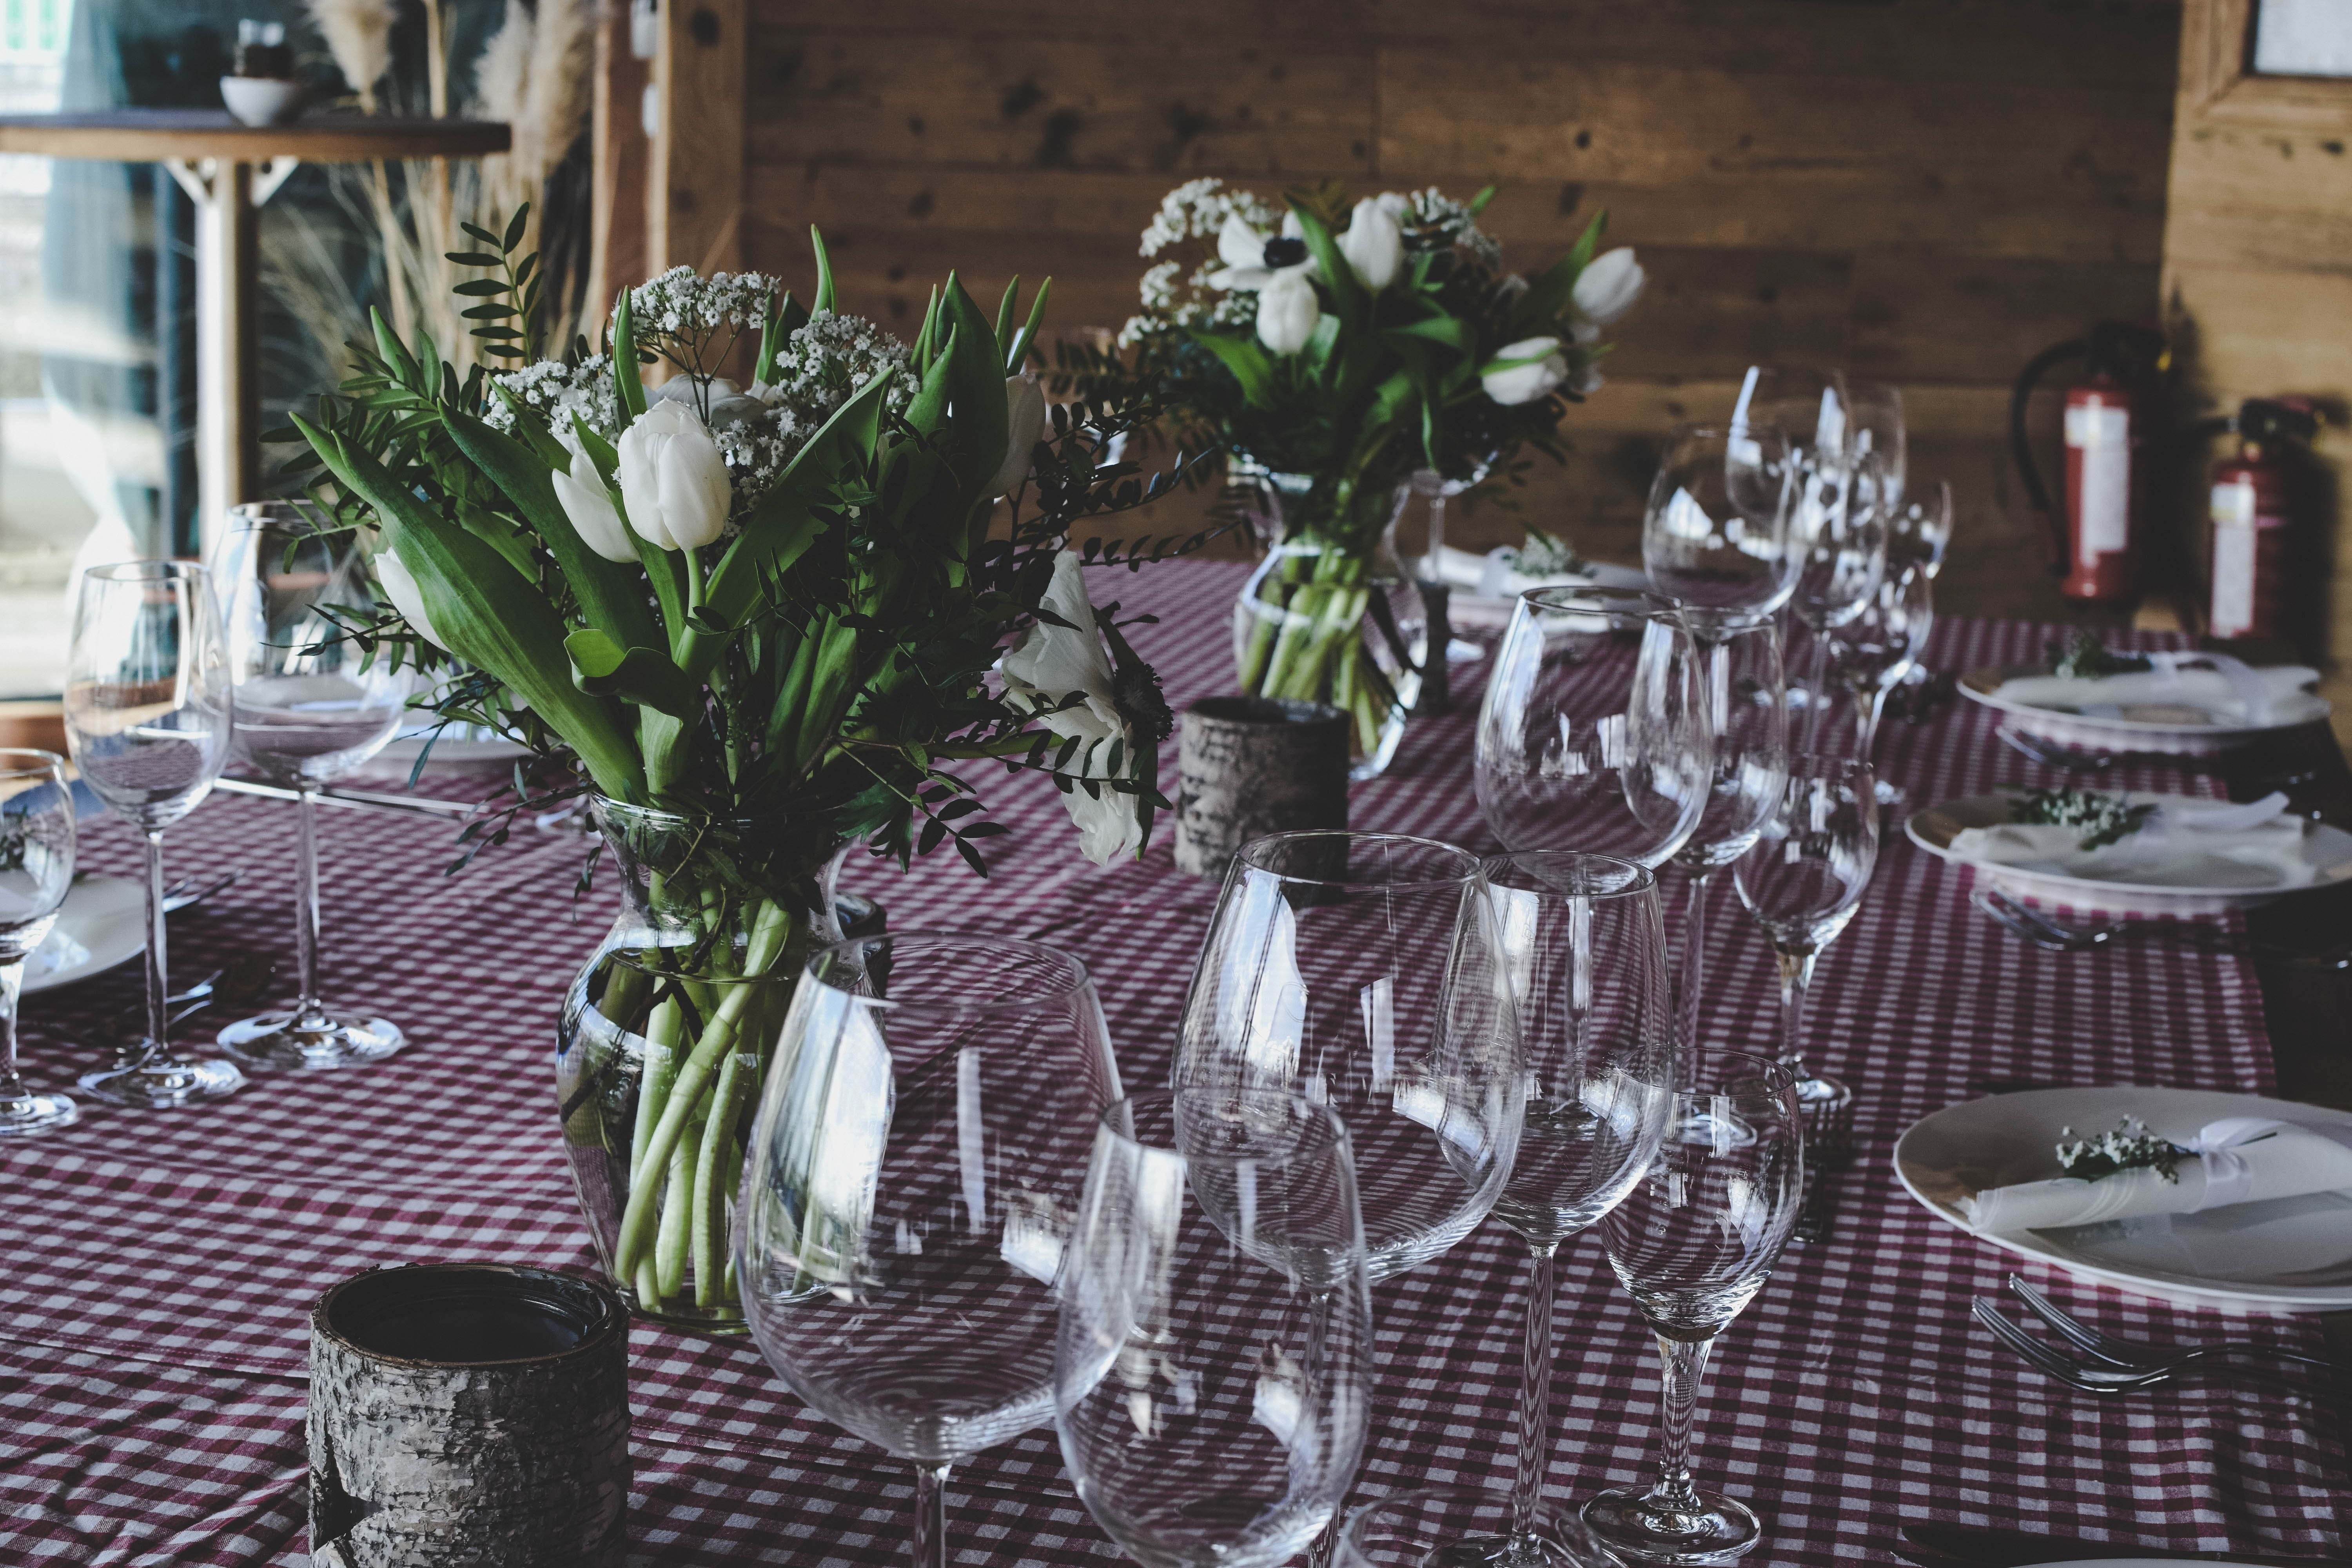 clear wine glasses beside white flower centerpiece on red and white table cover